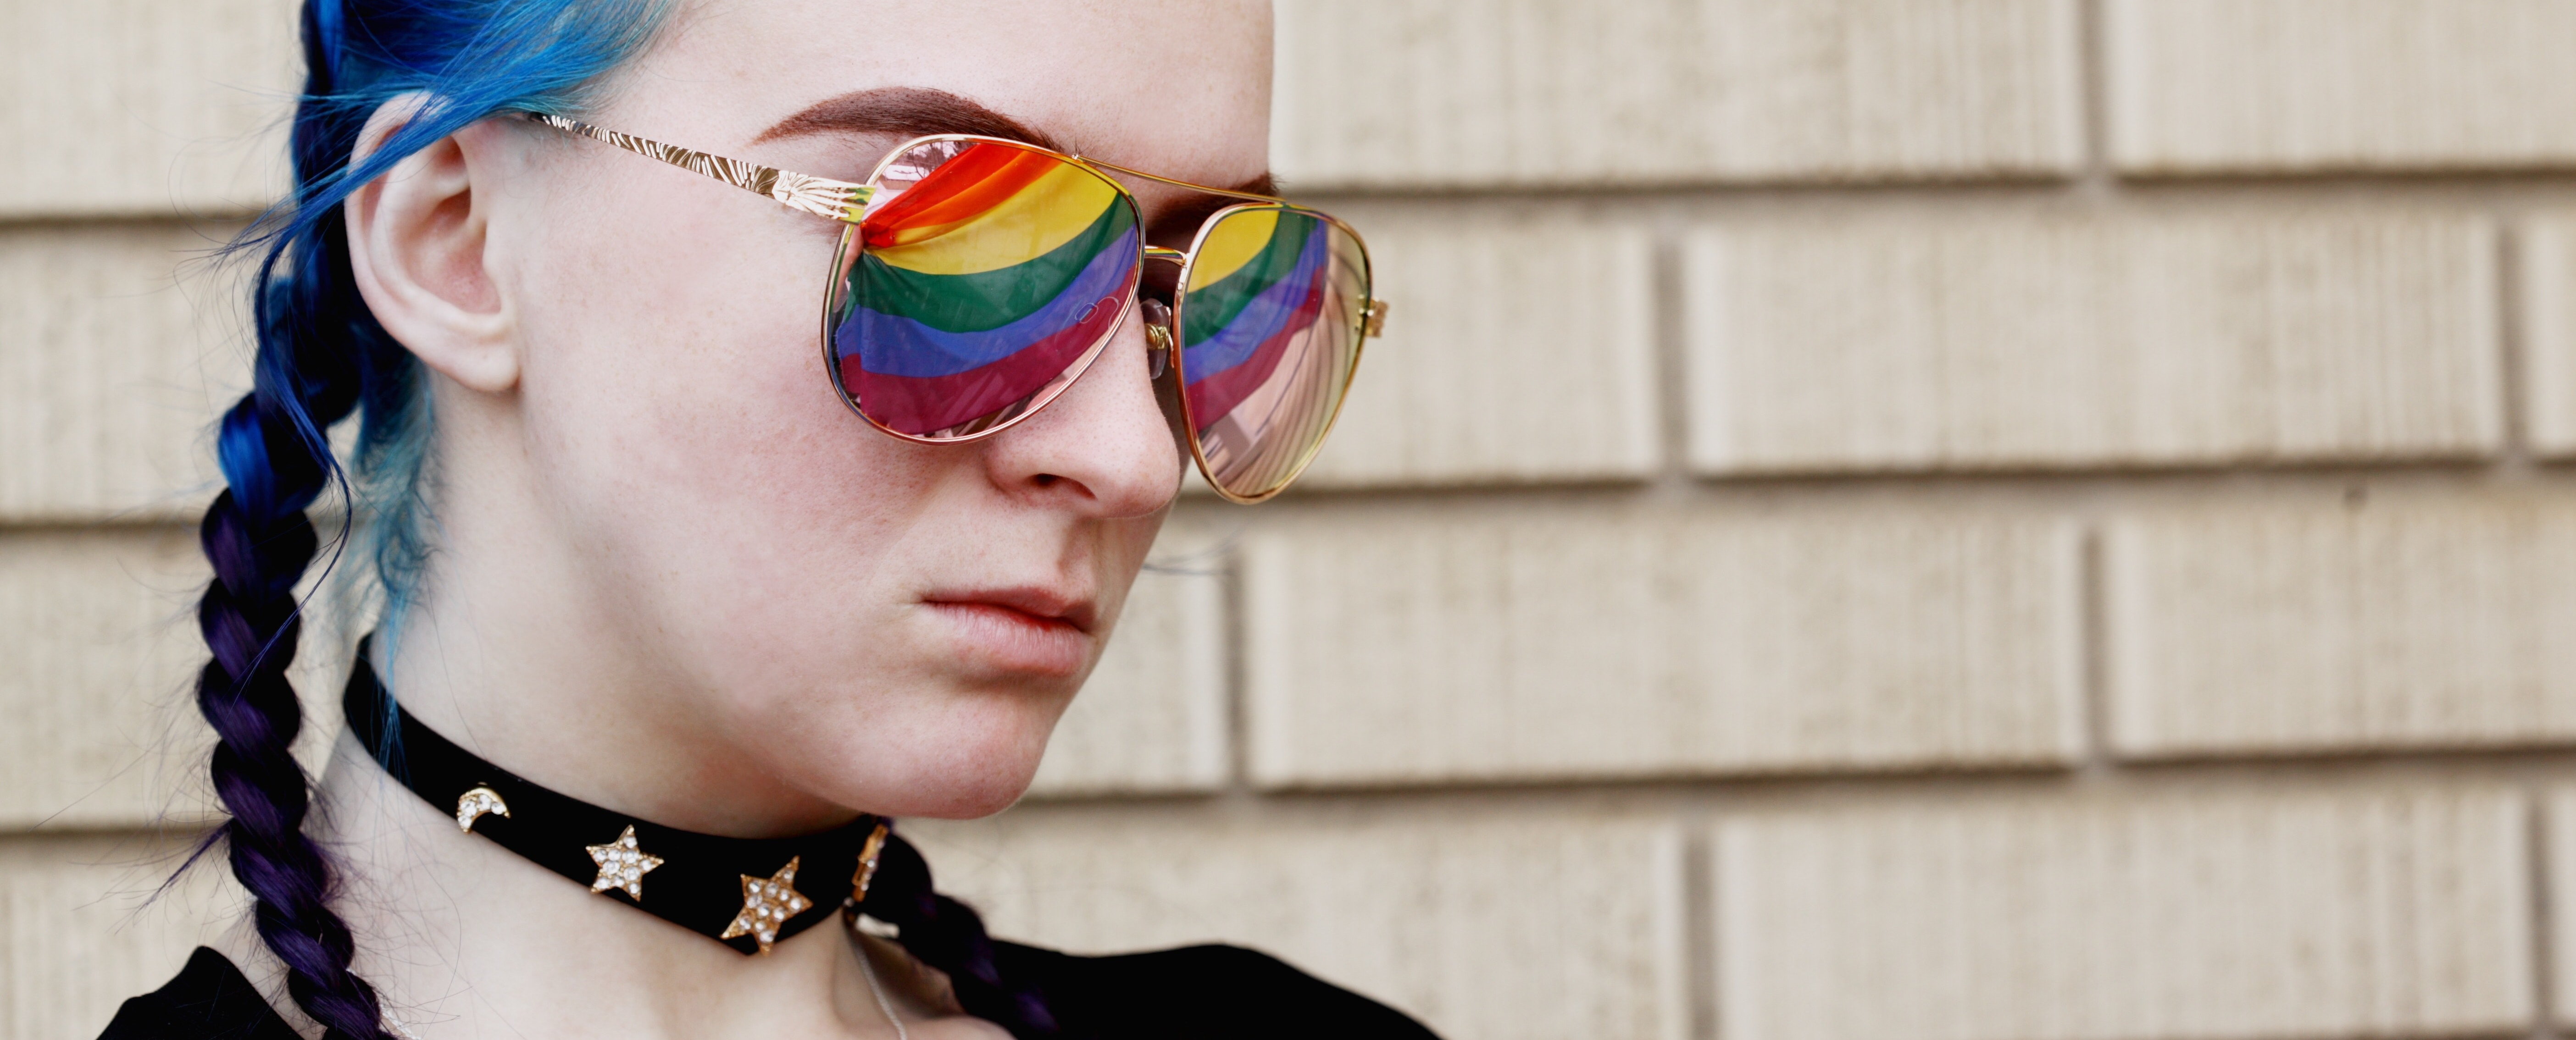 blue hair in braids woman with sunglasses on showing rainbow flag reflection